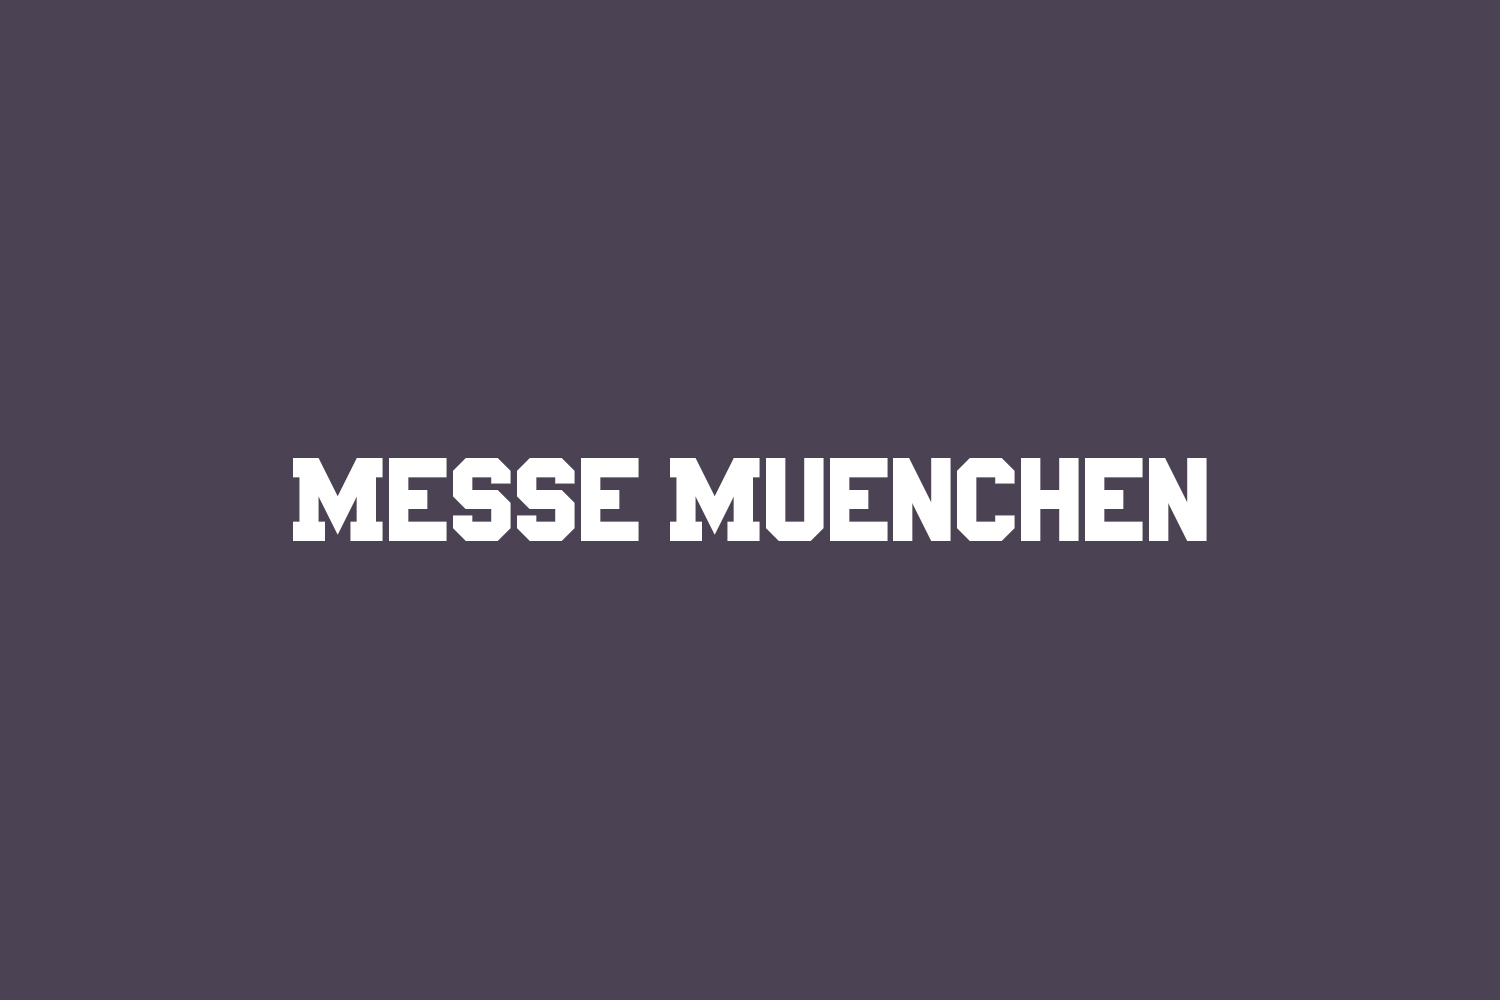 Messe Muenchen Free Font